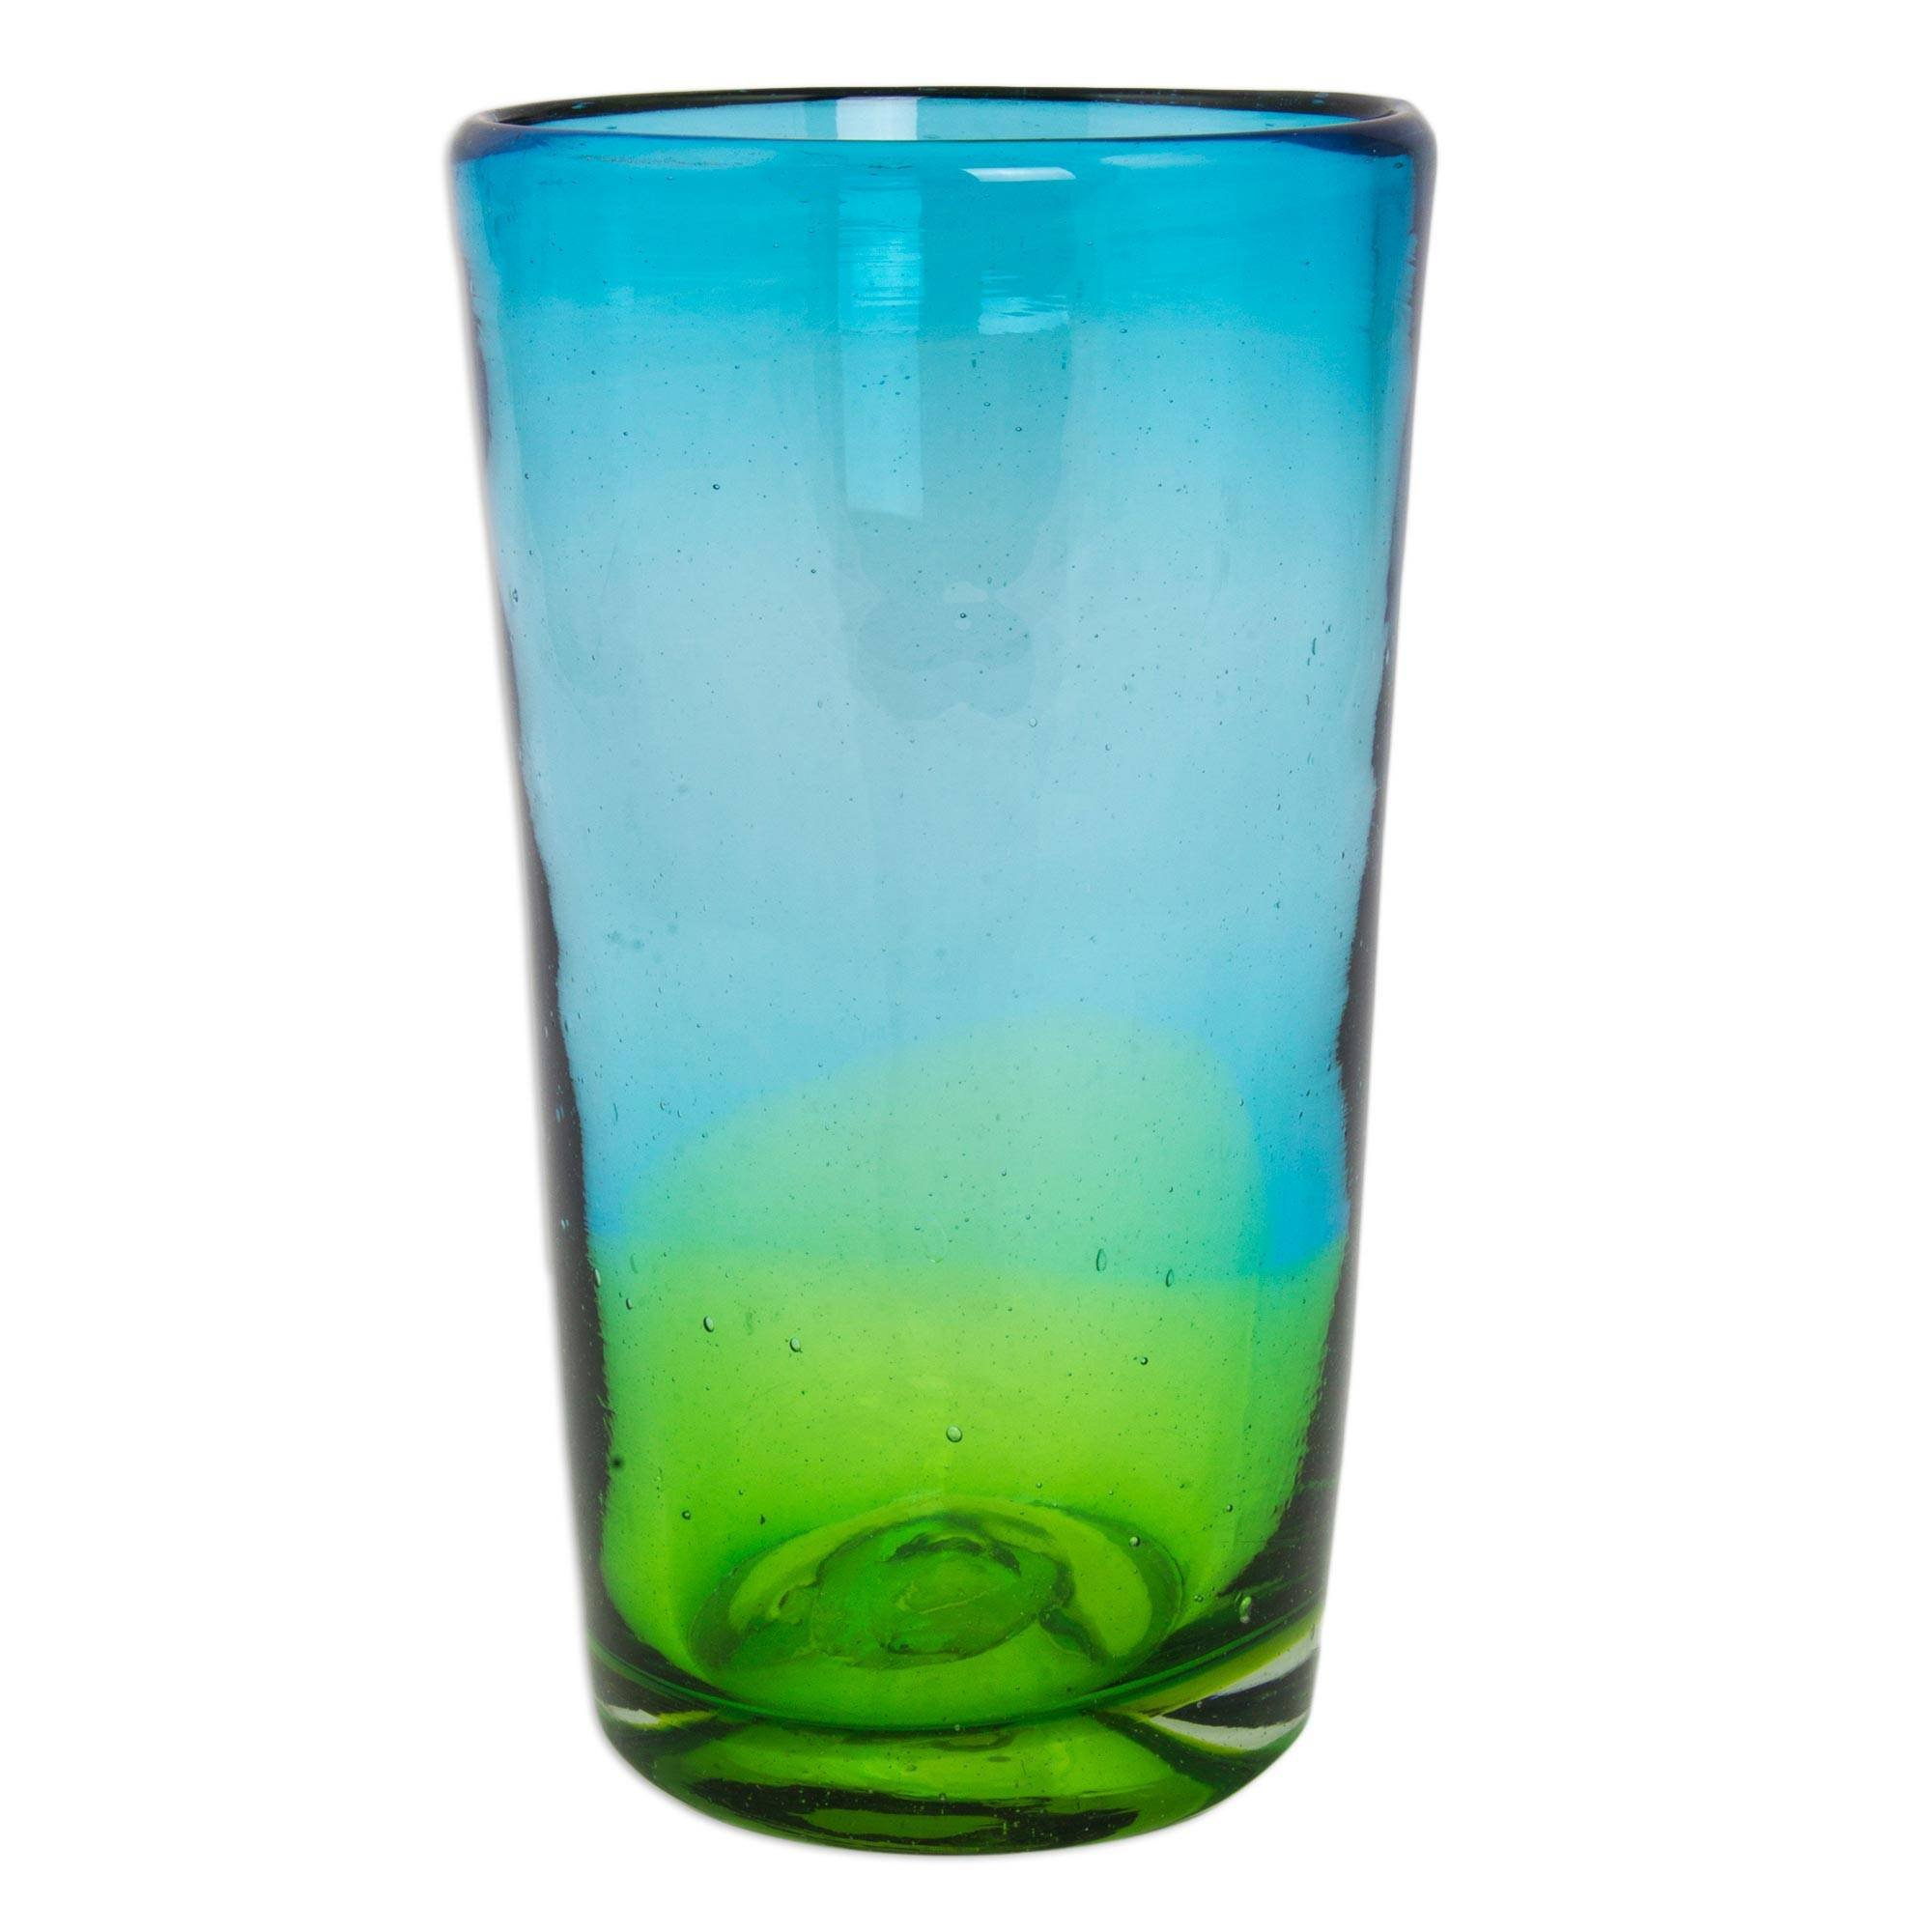 NOVICA Hand Blown Recycled Glass Blue and Green Ombre Highball Glasses, 15 oz, Aurora Tapatia' (set of 6) by NOVICA (Image #3)